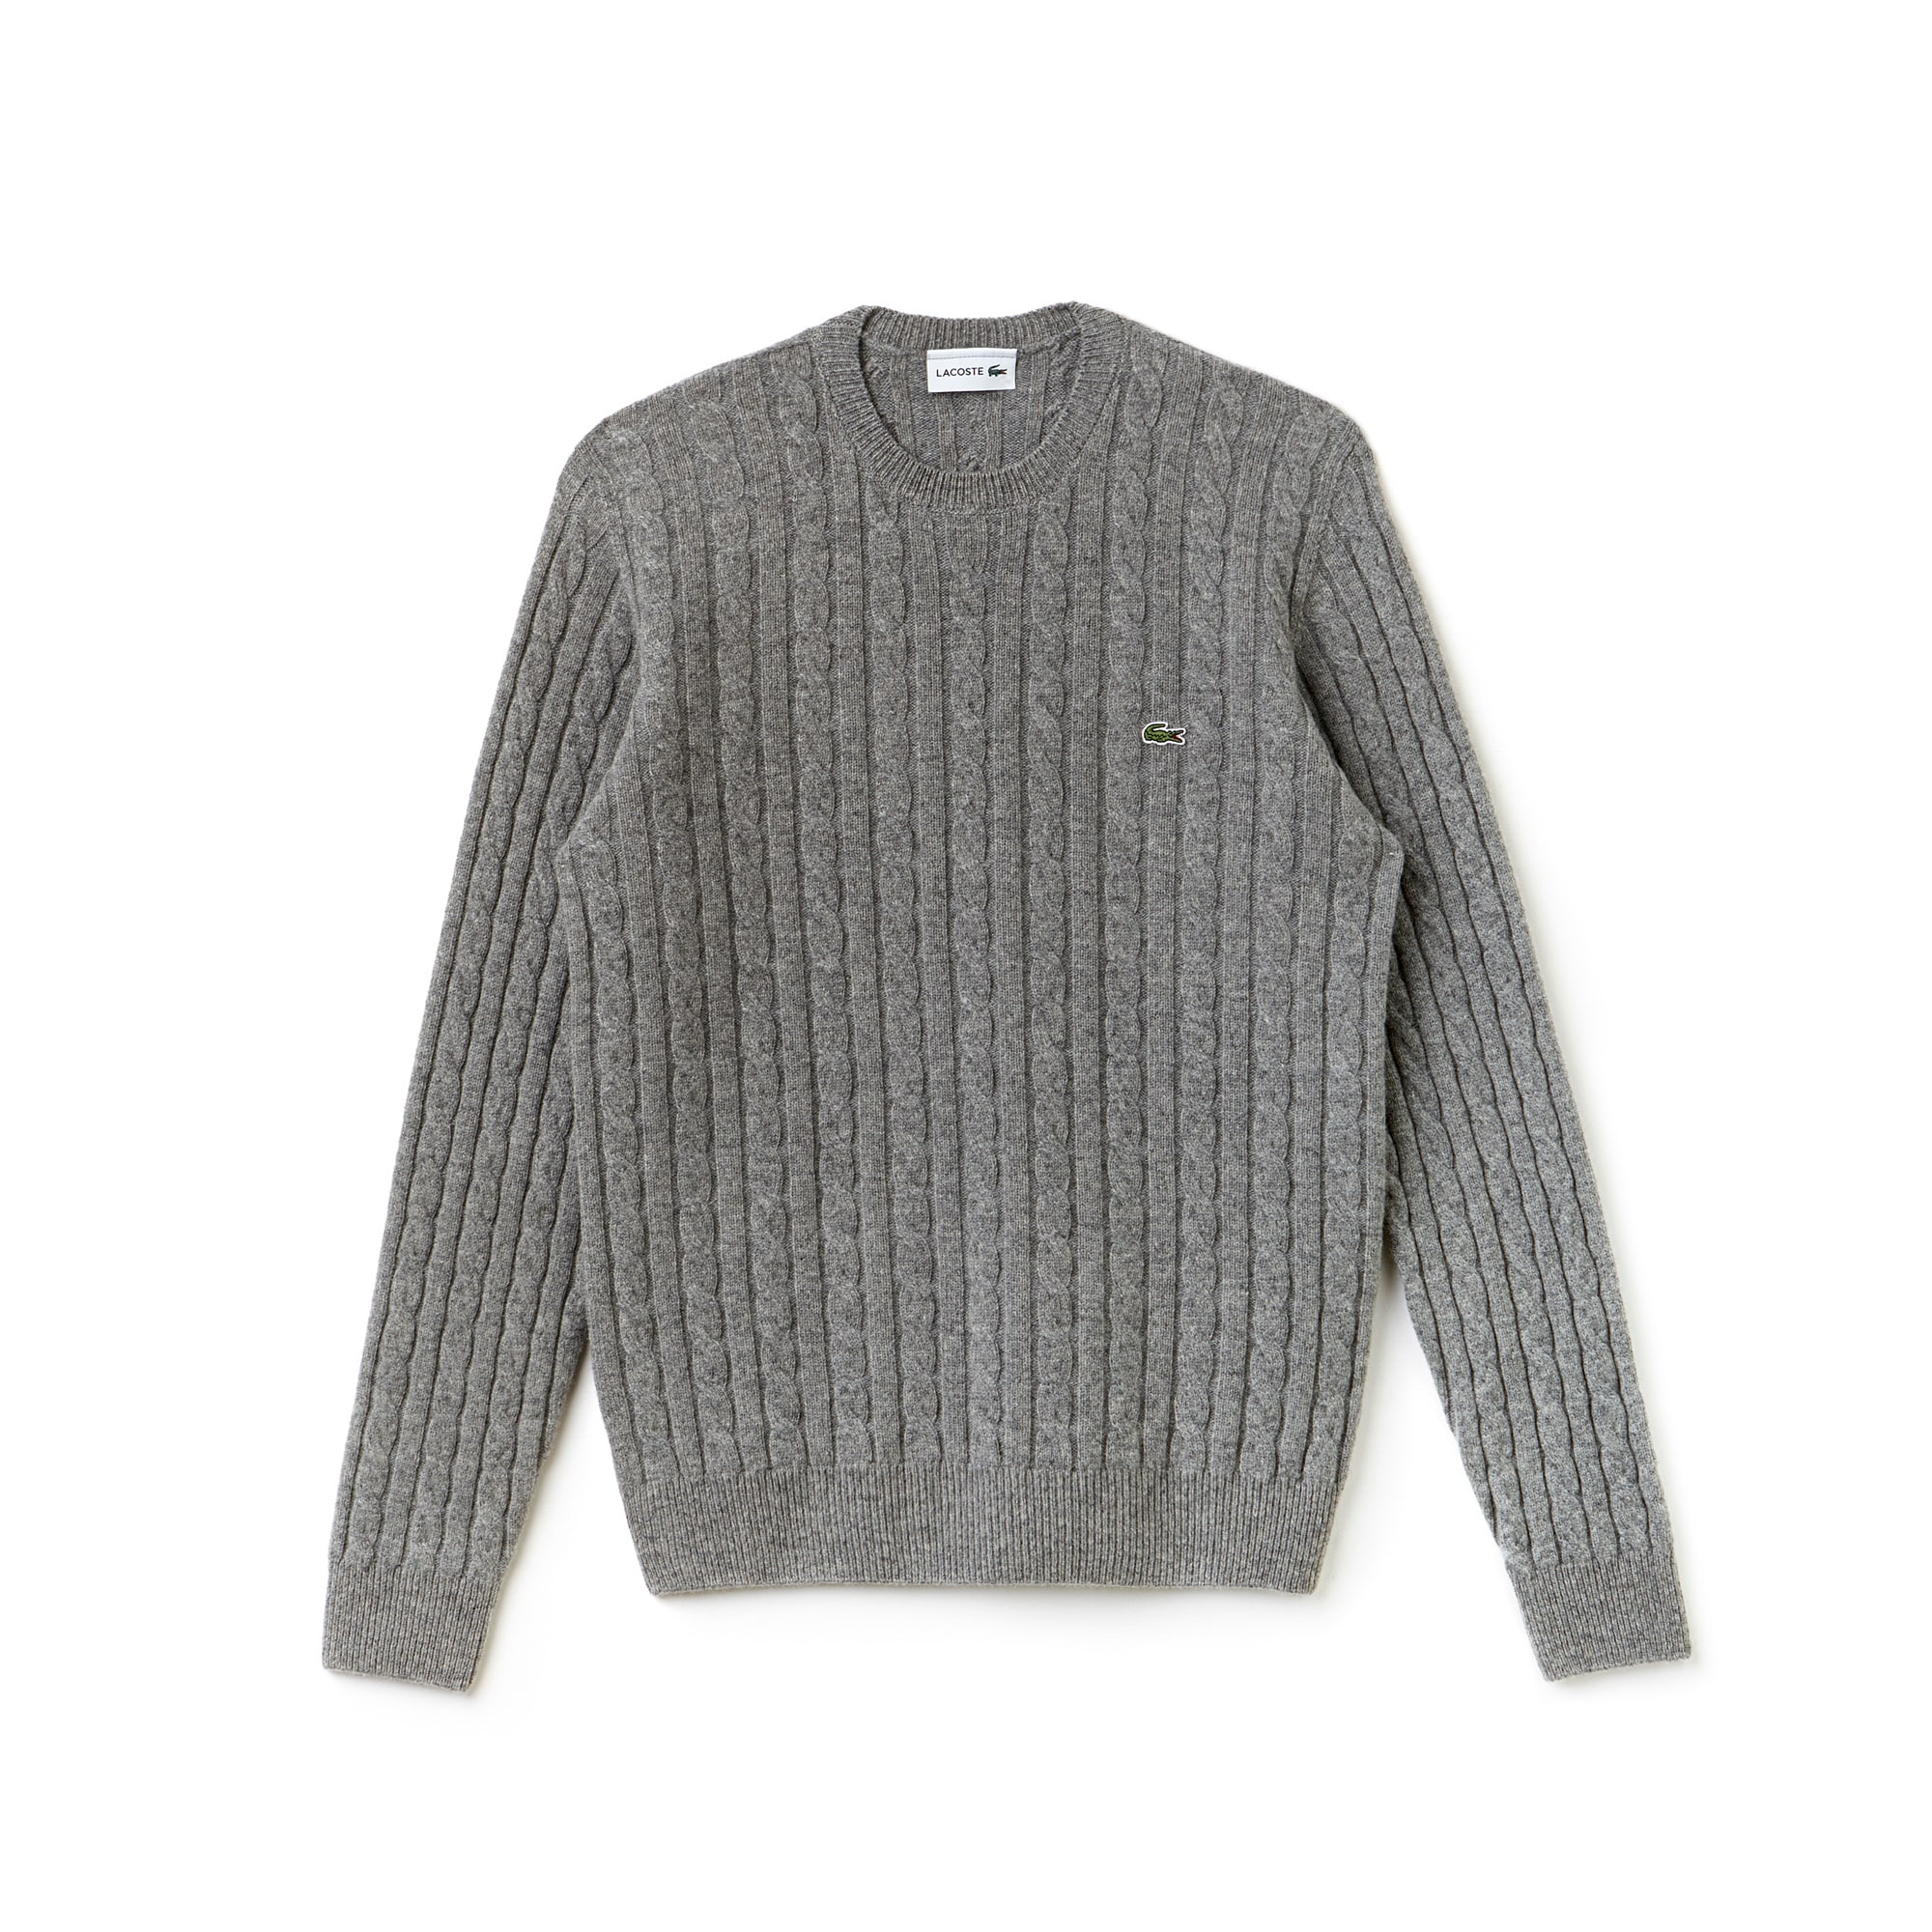 26c26983 Men's Crew Neck Wool Cable Knit Effect Sweater